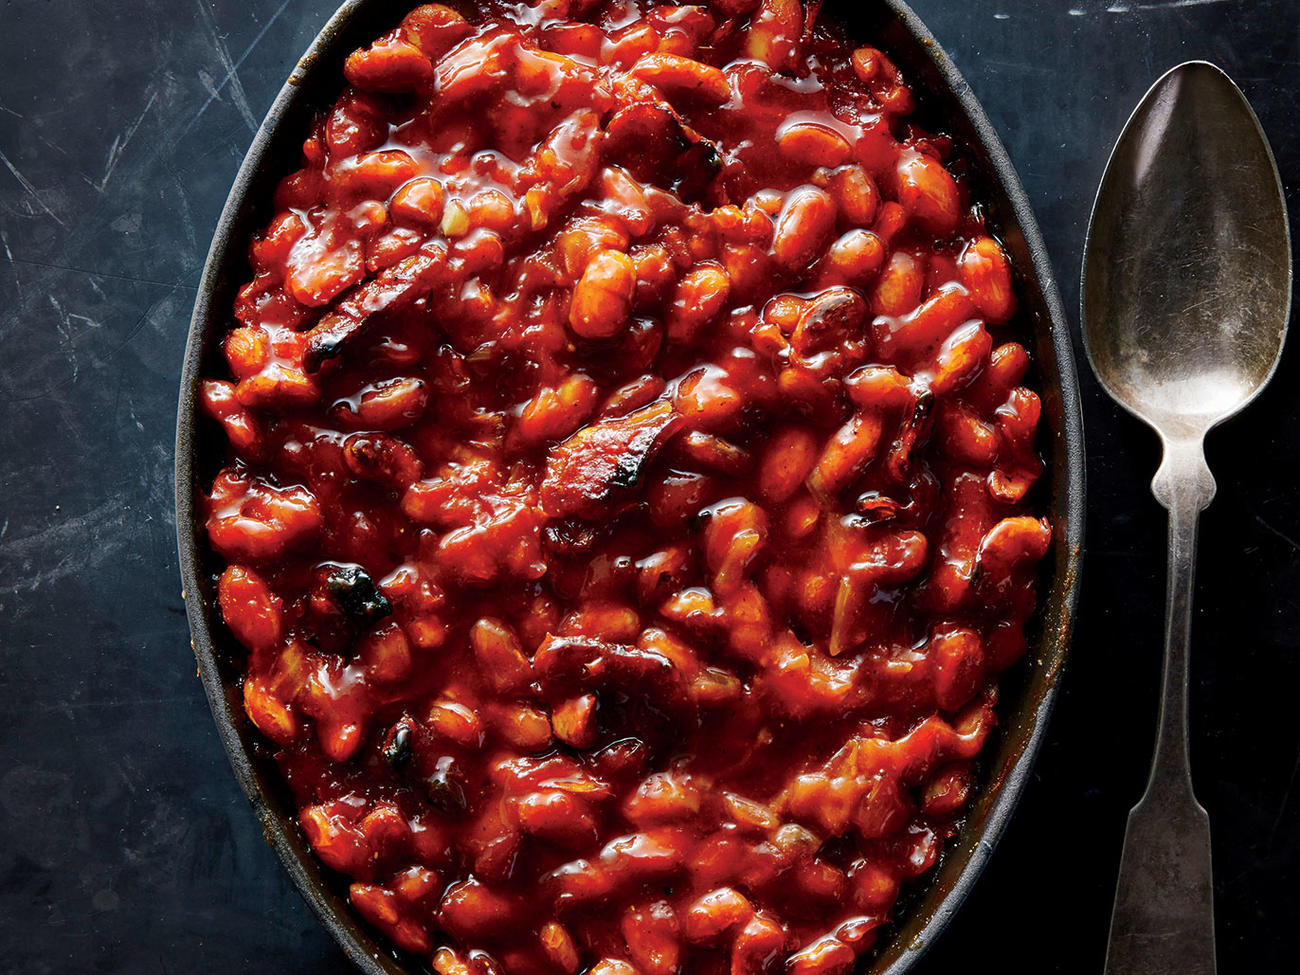 Maple-Bacon Baked Beans